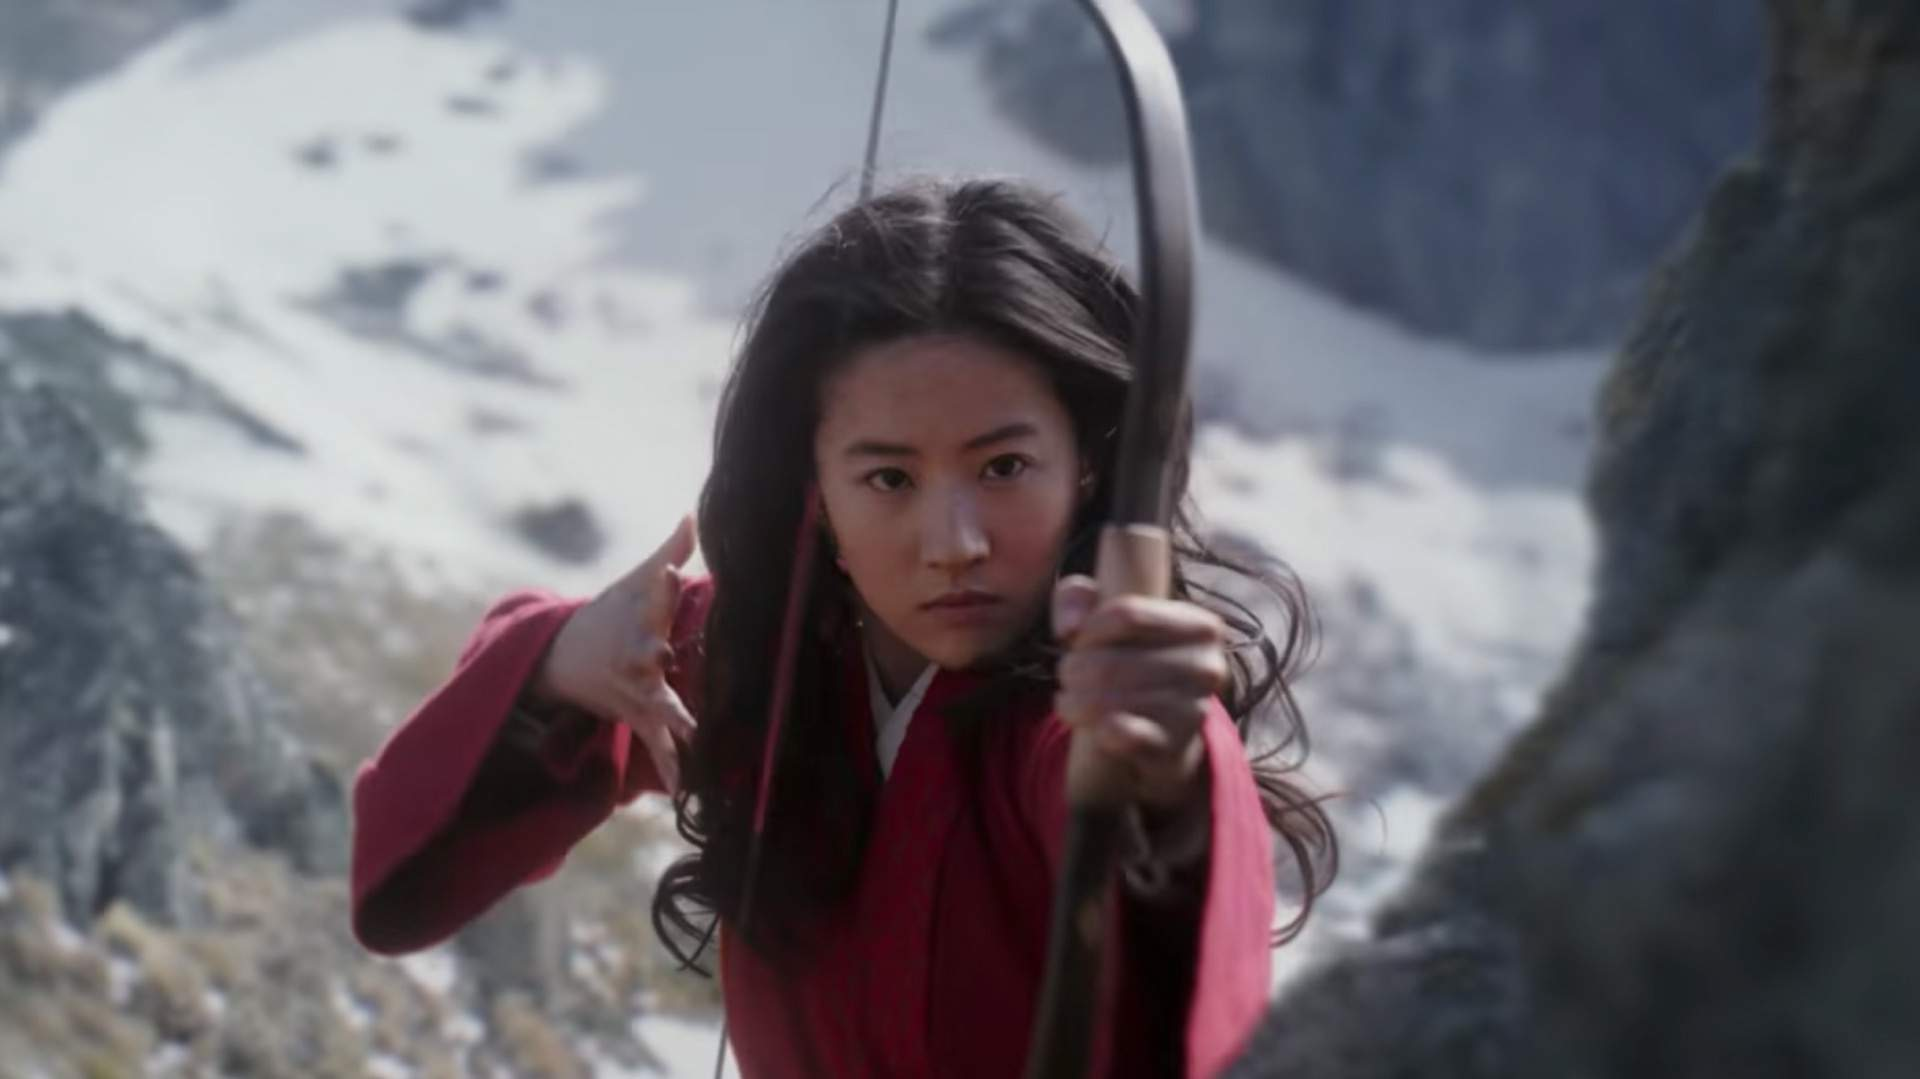 The Battle-Filled First Trailer for Disney's Live-Action 'Mulan' Is Here